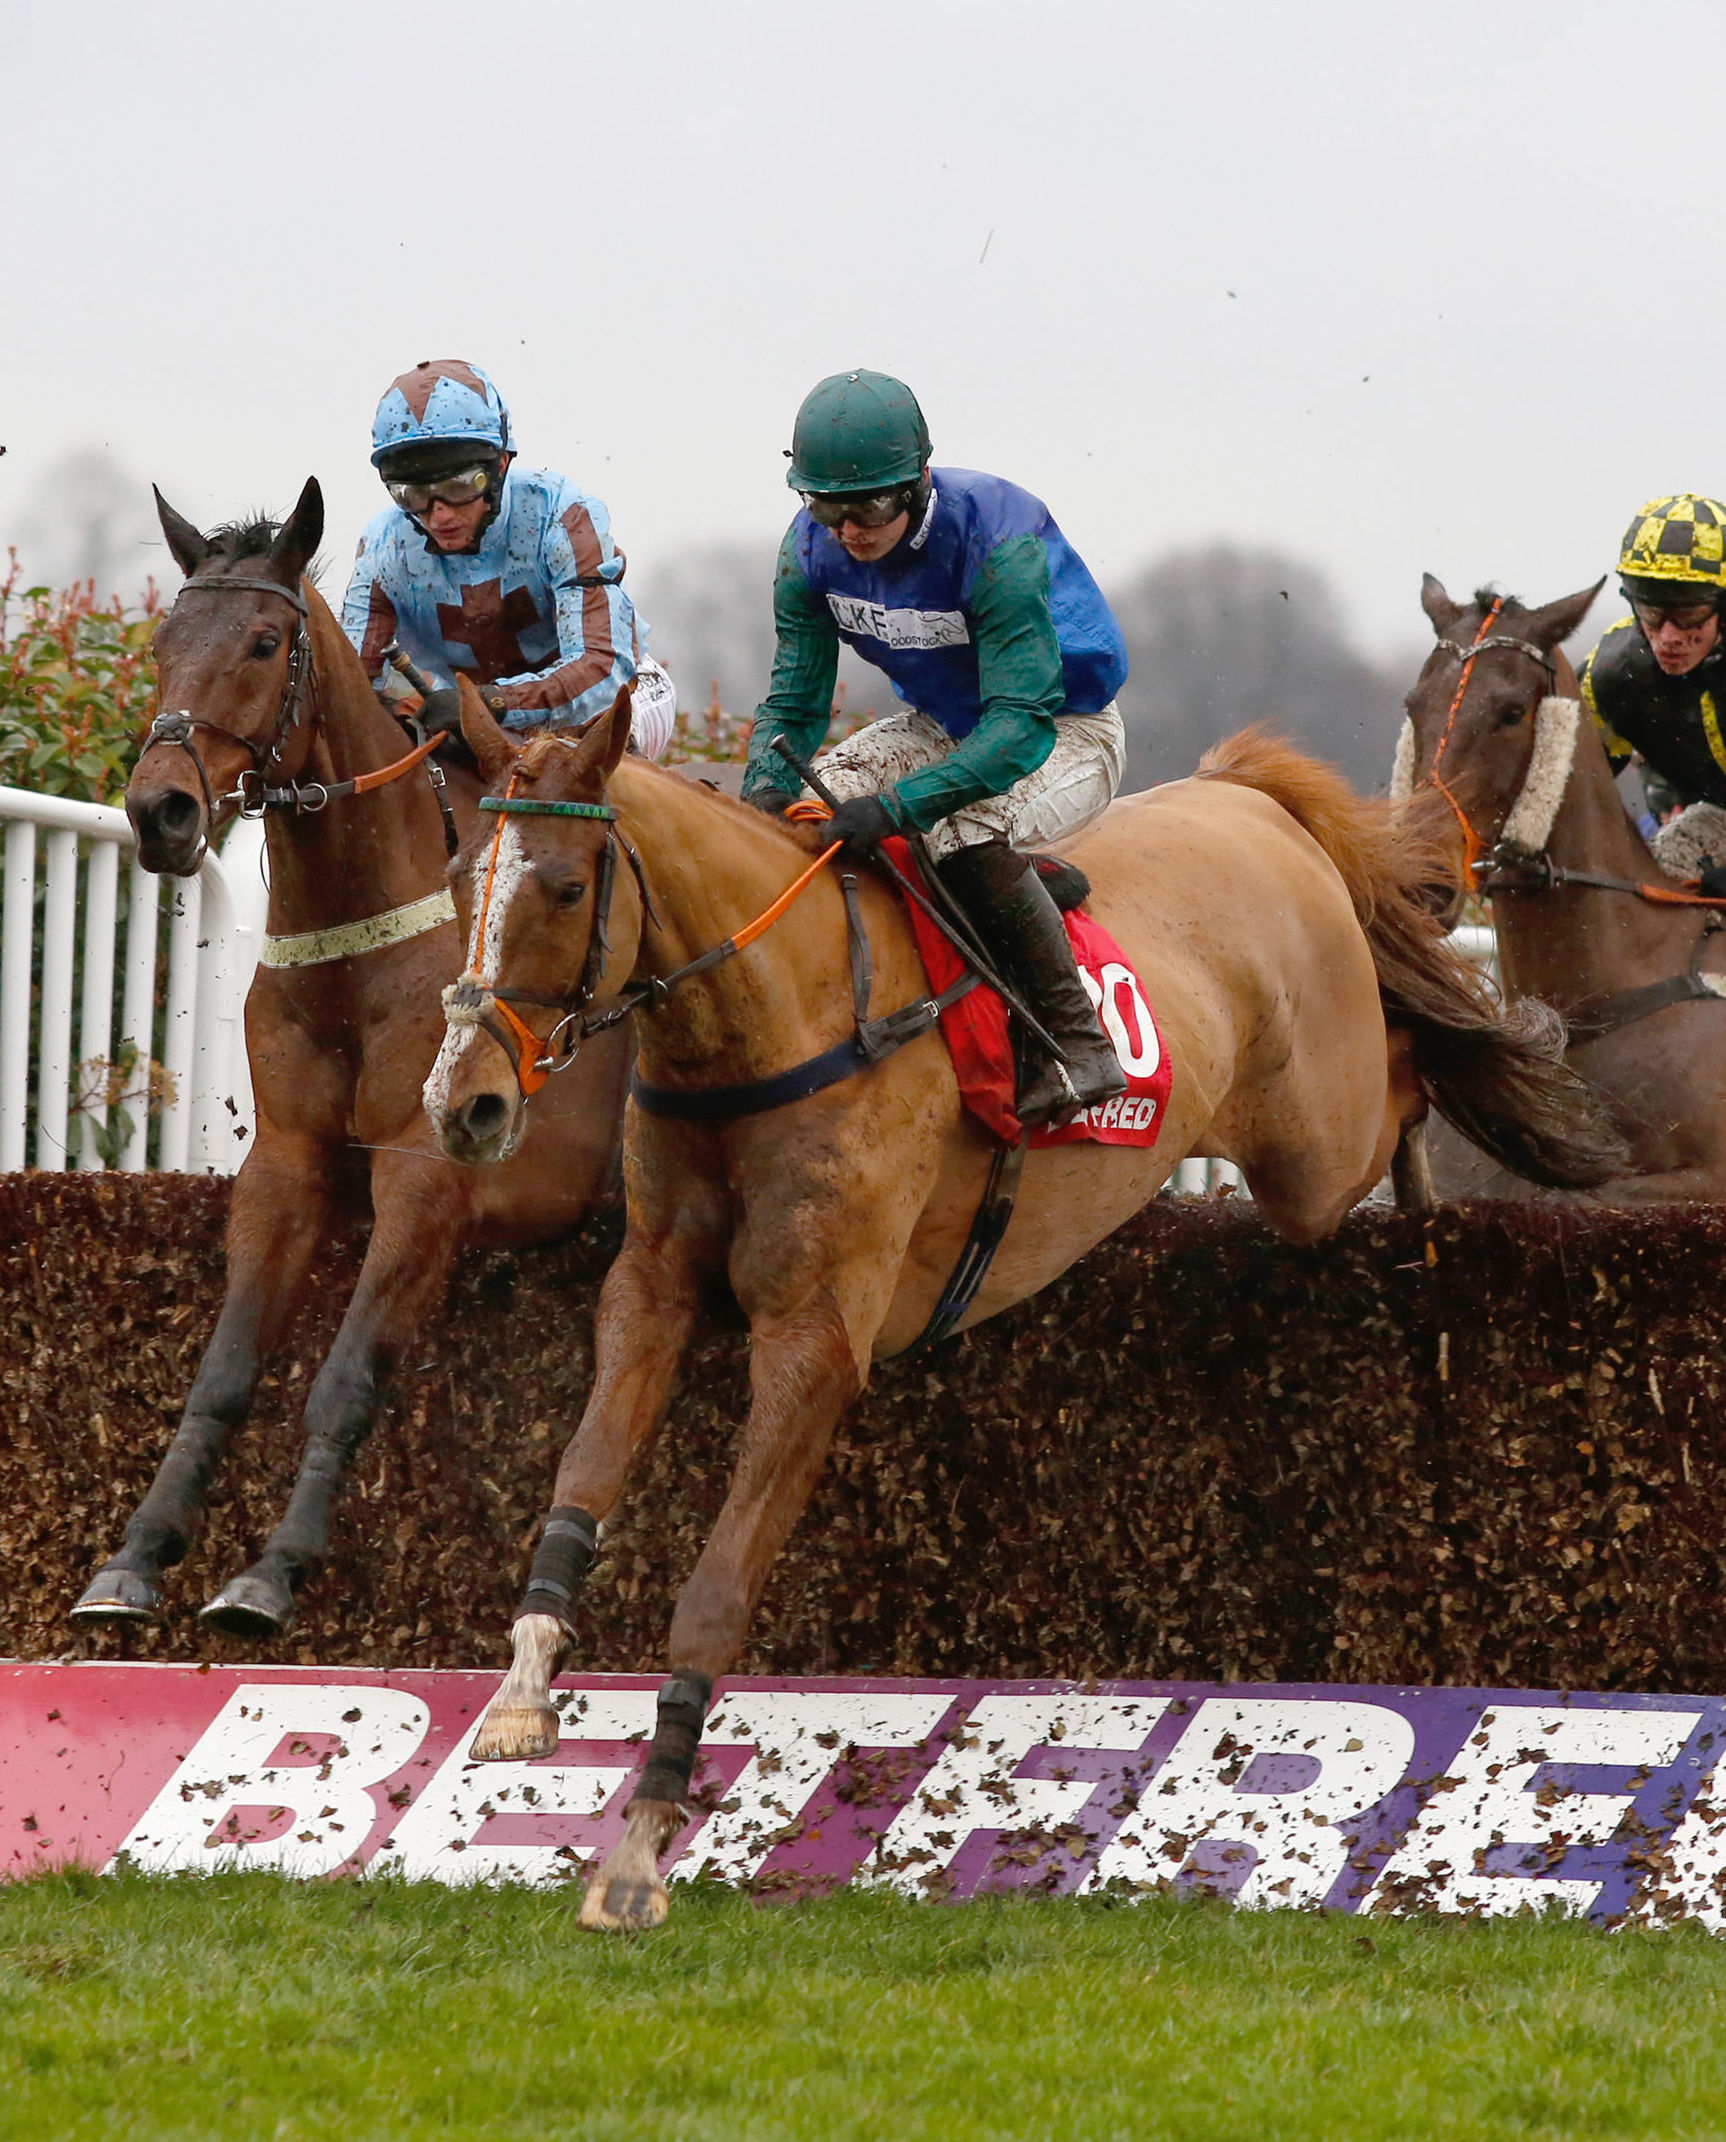 GUTSY SUCCESS: Ballydine and jockey Sean Bowen (green cap) on the way to a superb victory in the Betfred Mobile Masters Handicap Chase at Sandown on SaturdayPicture: Julian Herbert/PA Wire